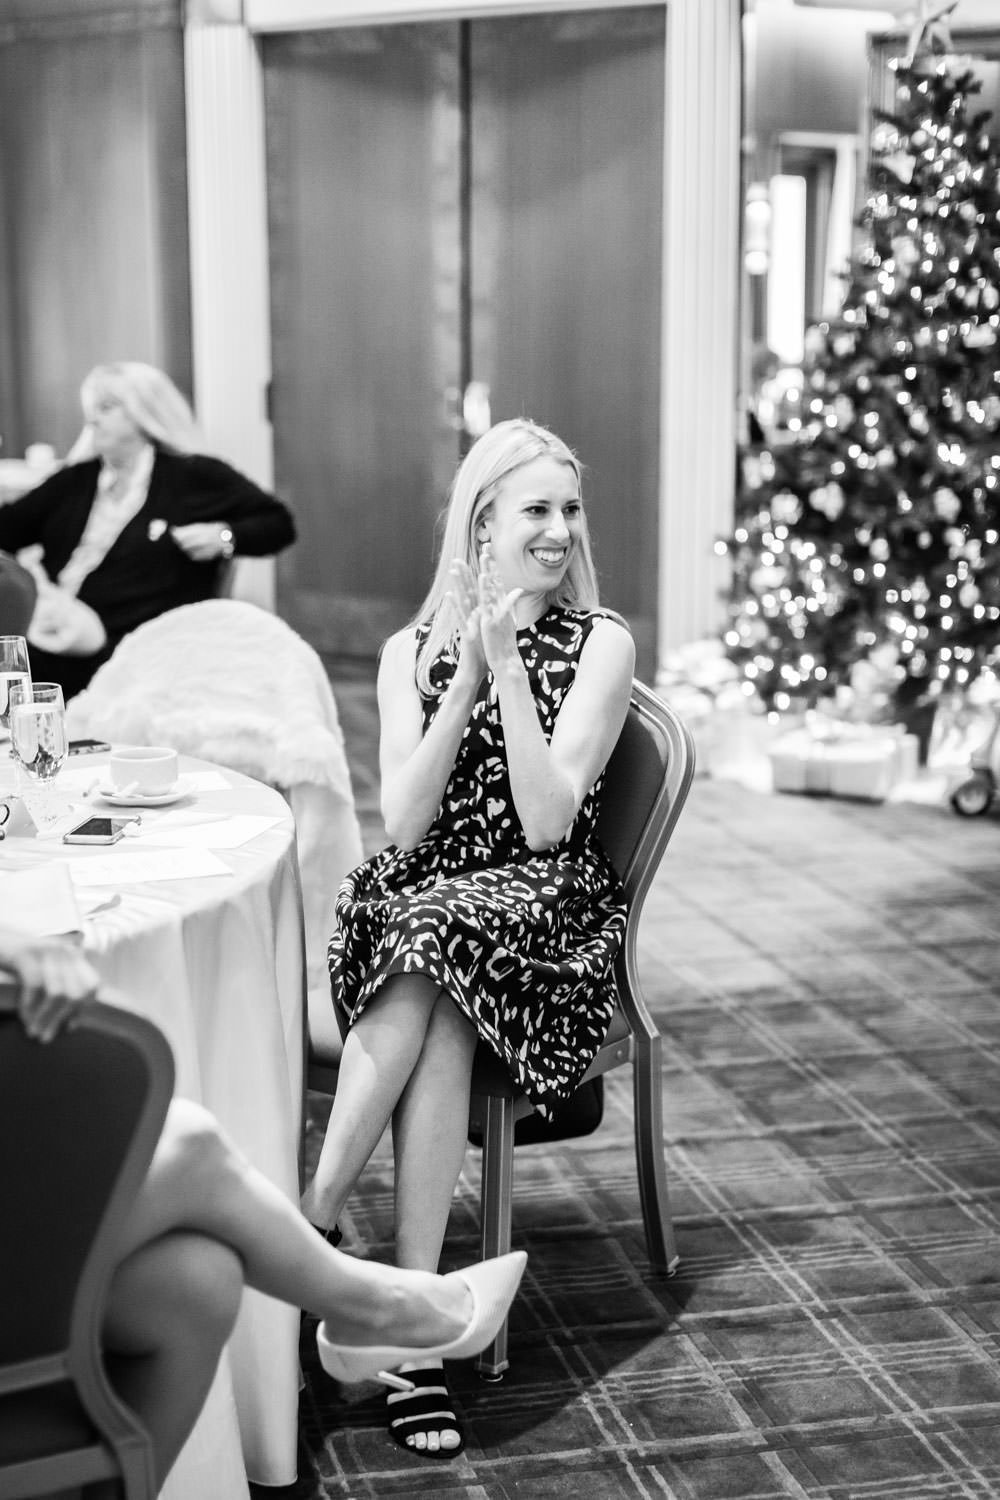 Guests smiling at Chic Beverly Hills Hotel Bridal Shower during Christmas time, Cavin Elizabeth Photography